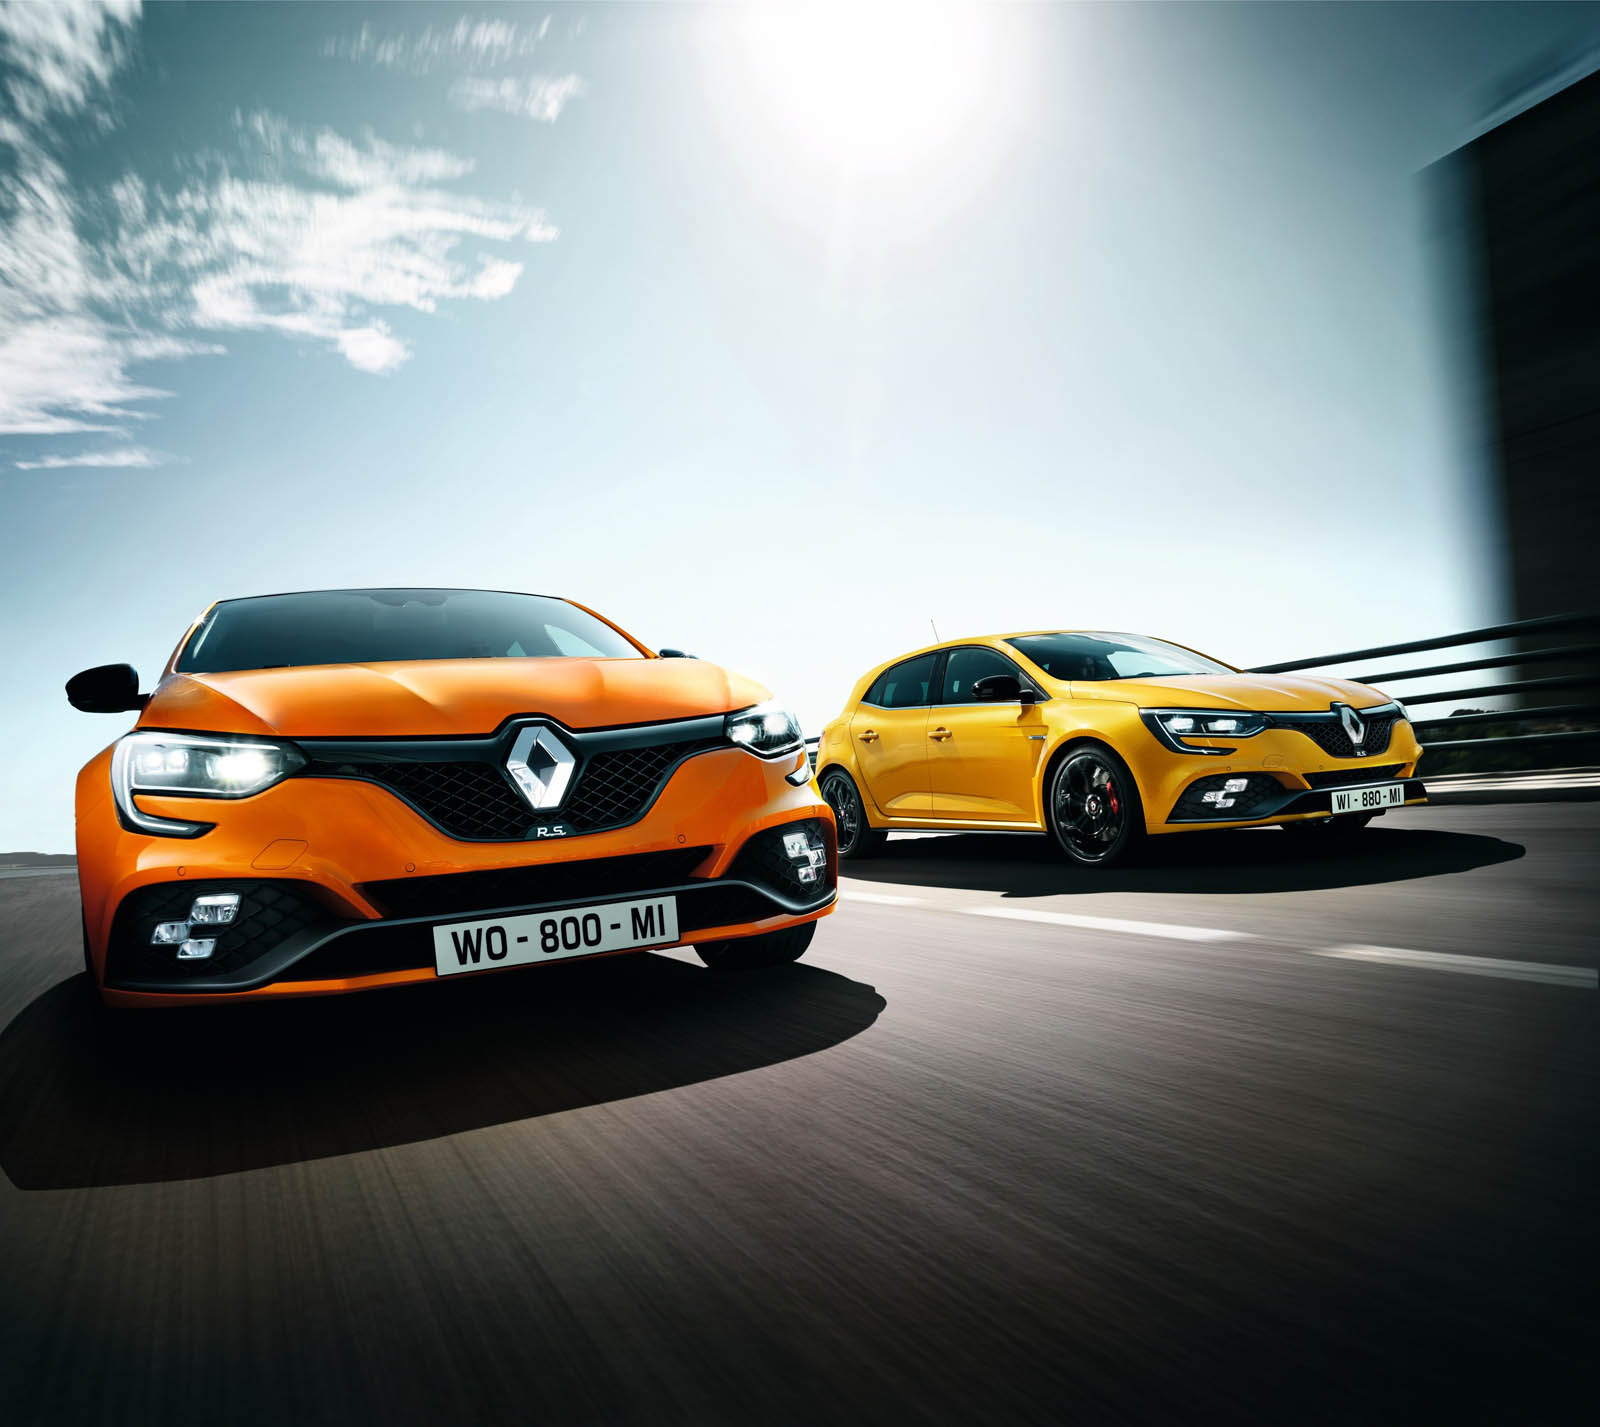 New Renault Megane RS Delivers 5.8-Sec 0-62 Time From €37,600